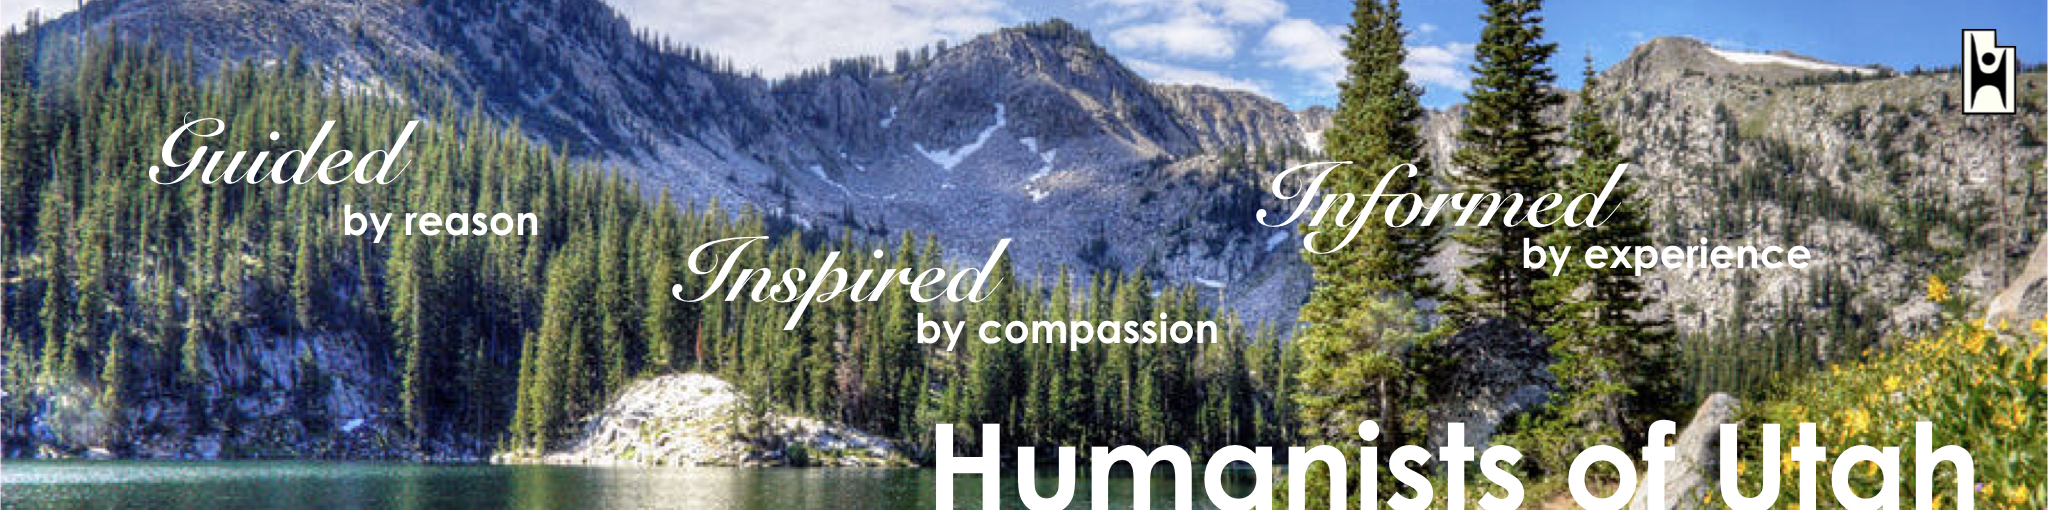 Humanists of Utah